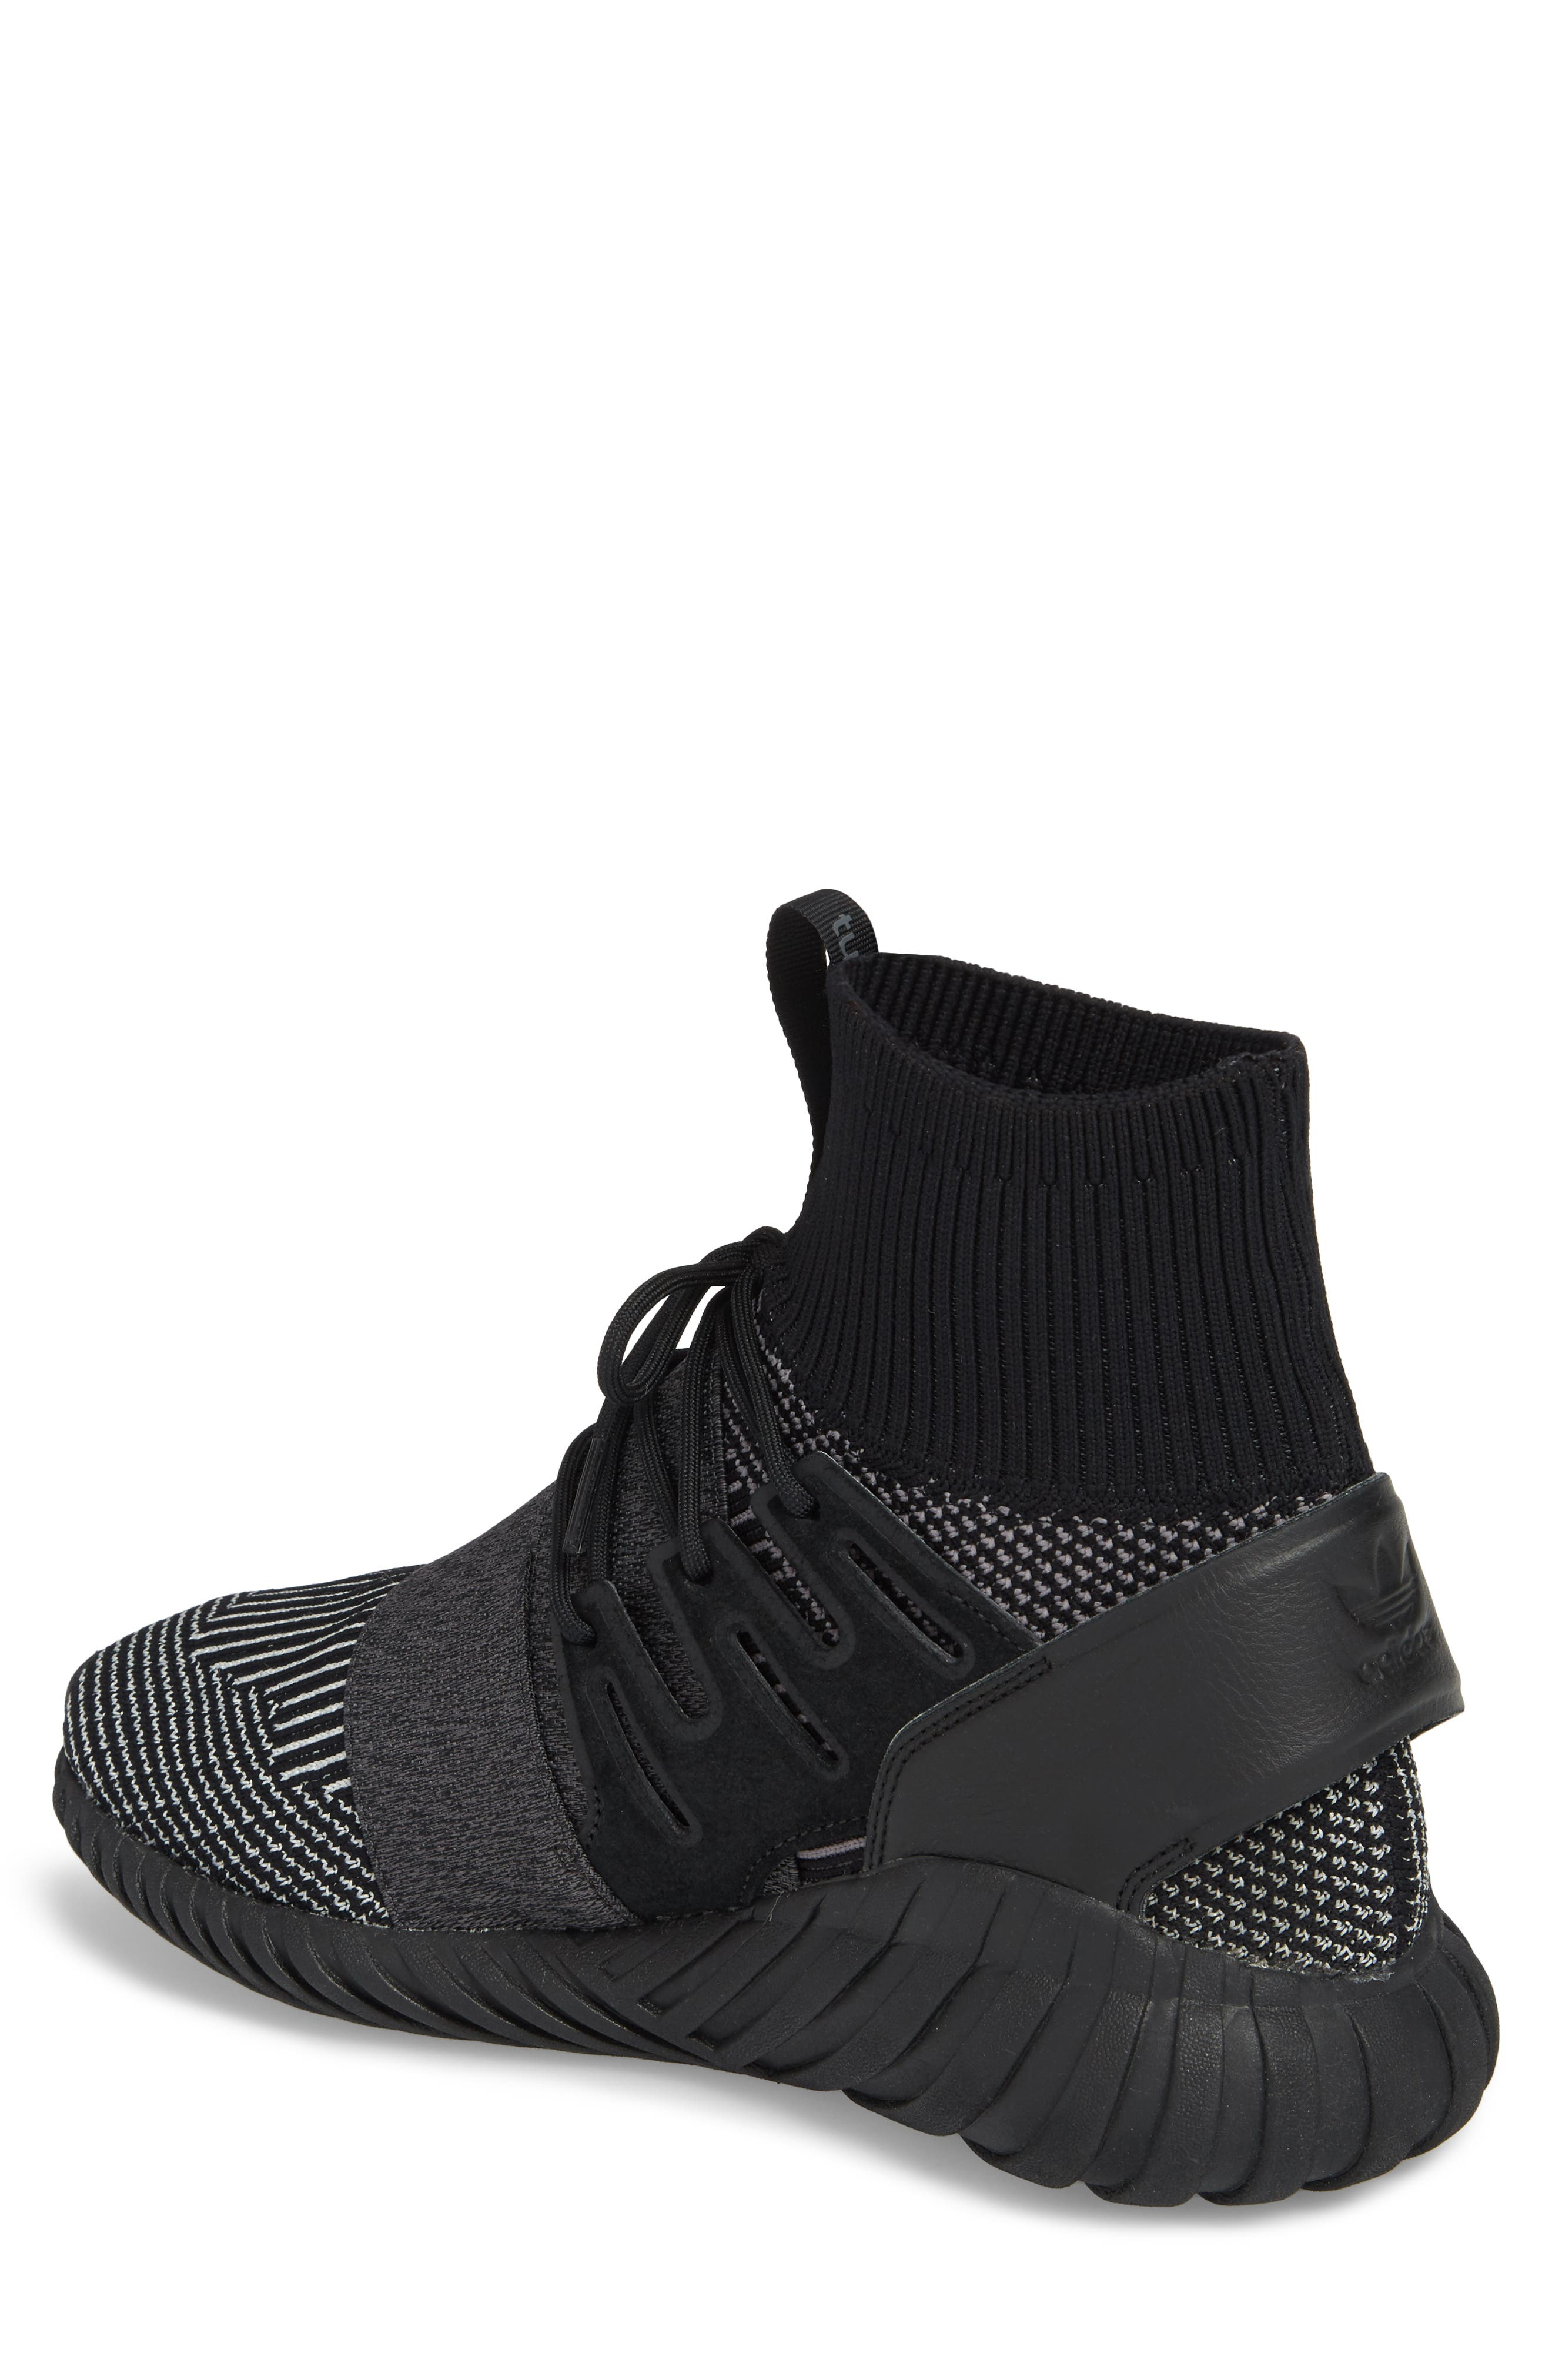 Tubular Doom Primeknit Sneaker,                             Alternate thumbnail 2, color,                             006